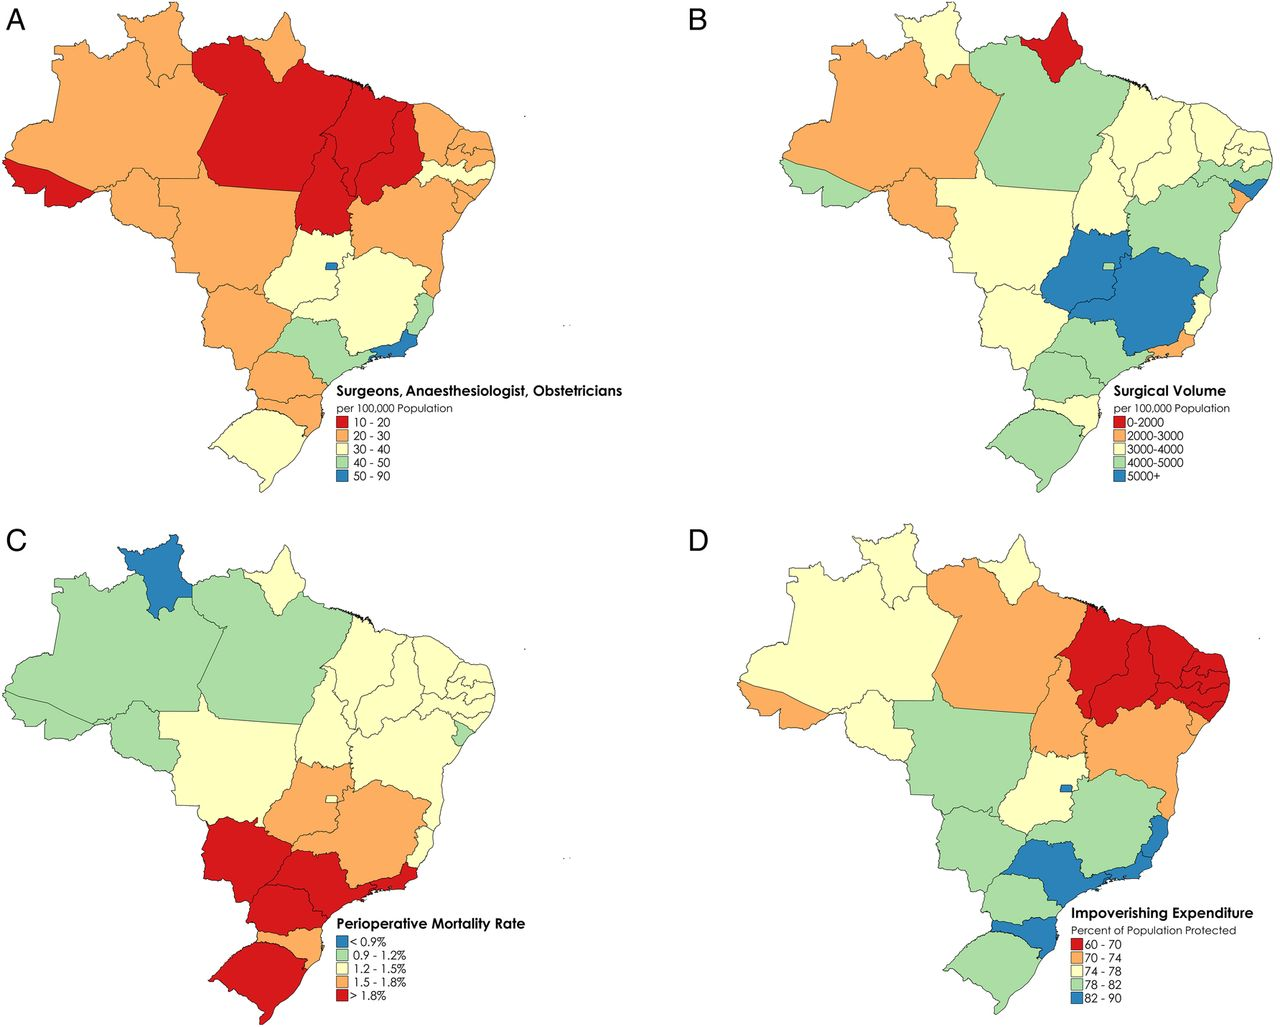 Assessing the Brazilian surgical system with six surgical